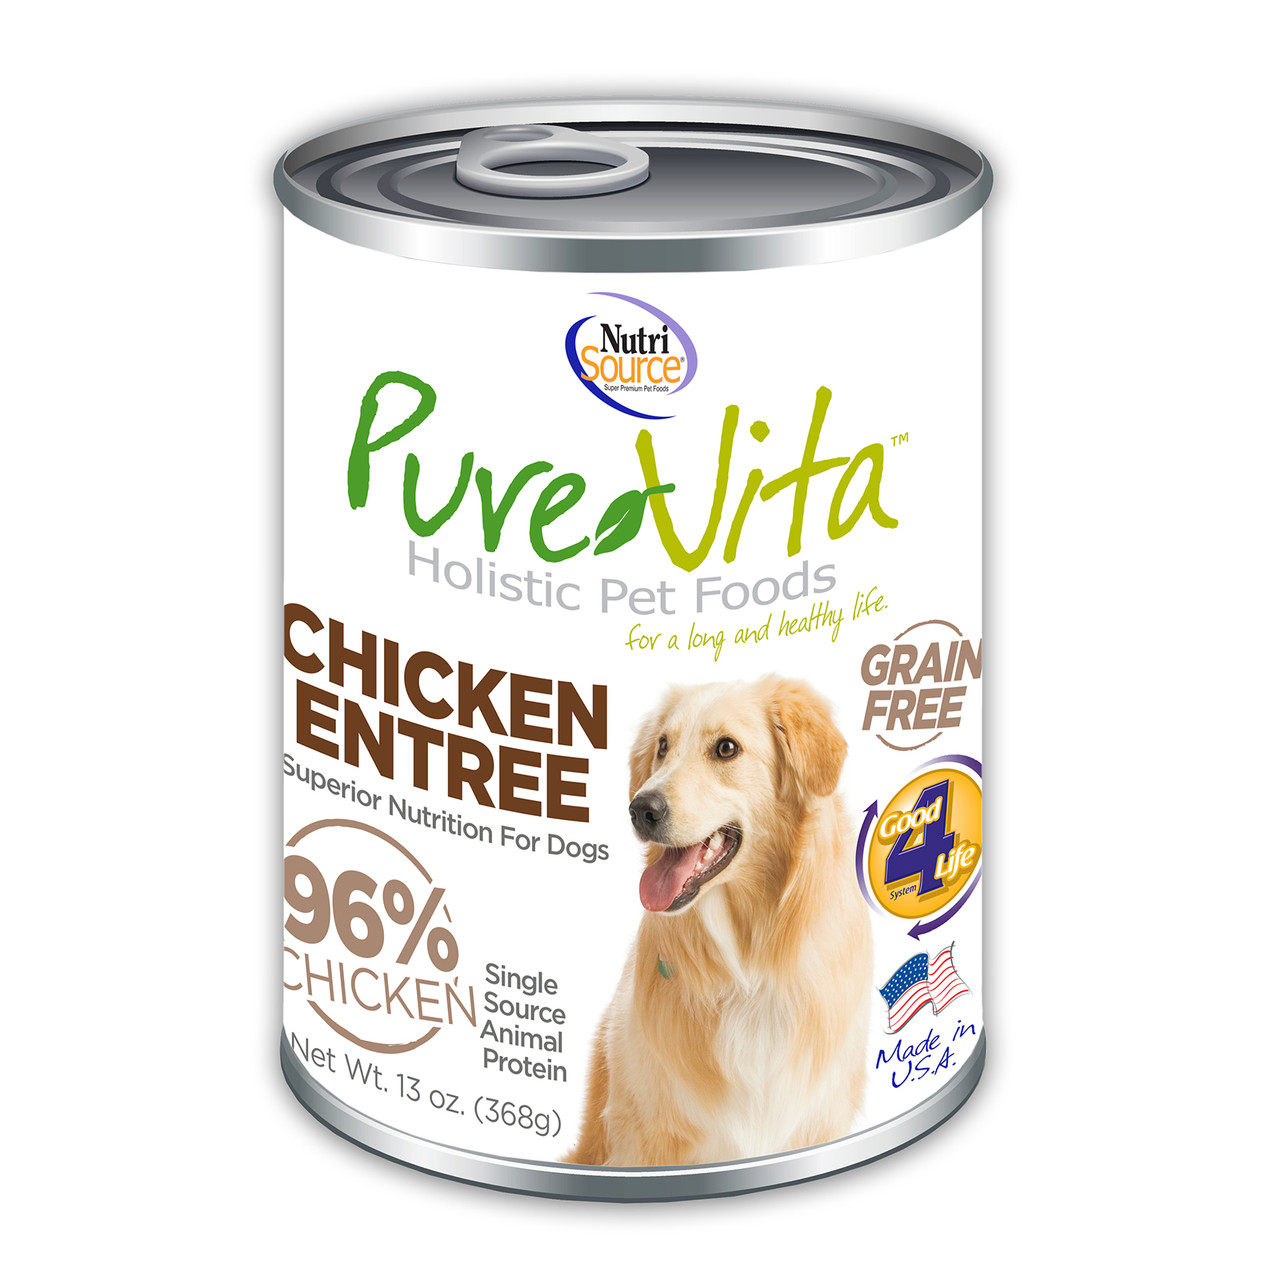 PureVita Chicken Entree Canned Dog Food